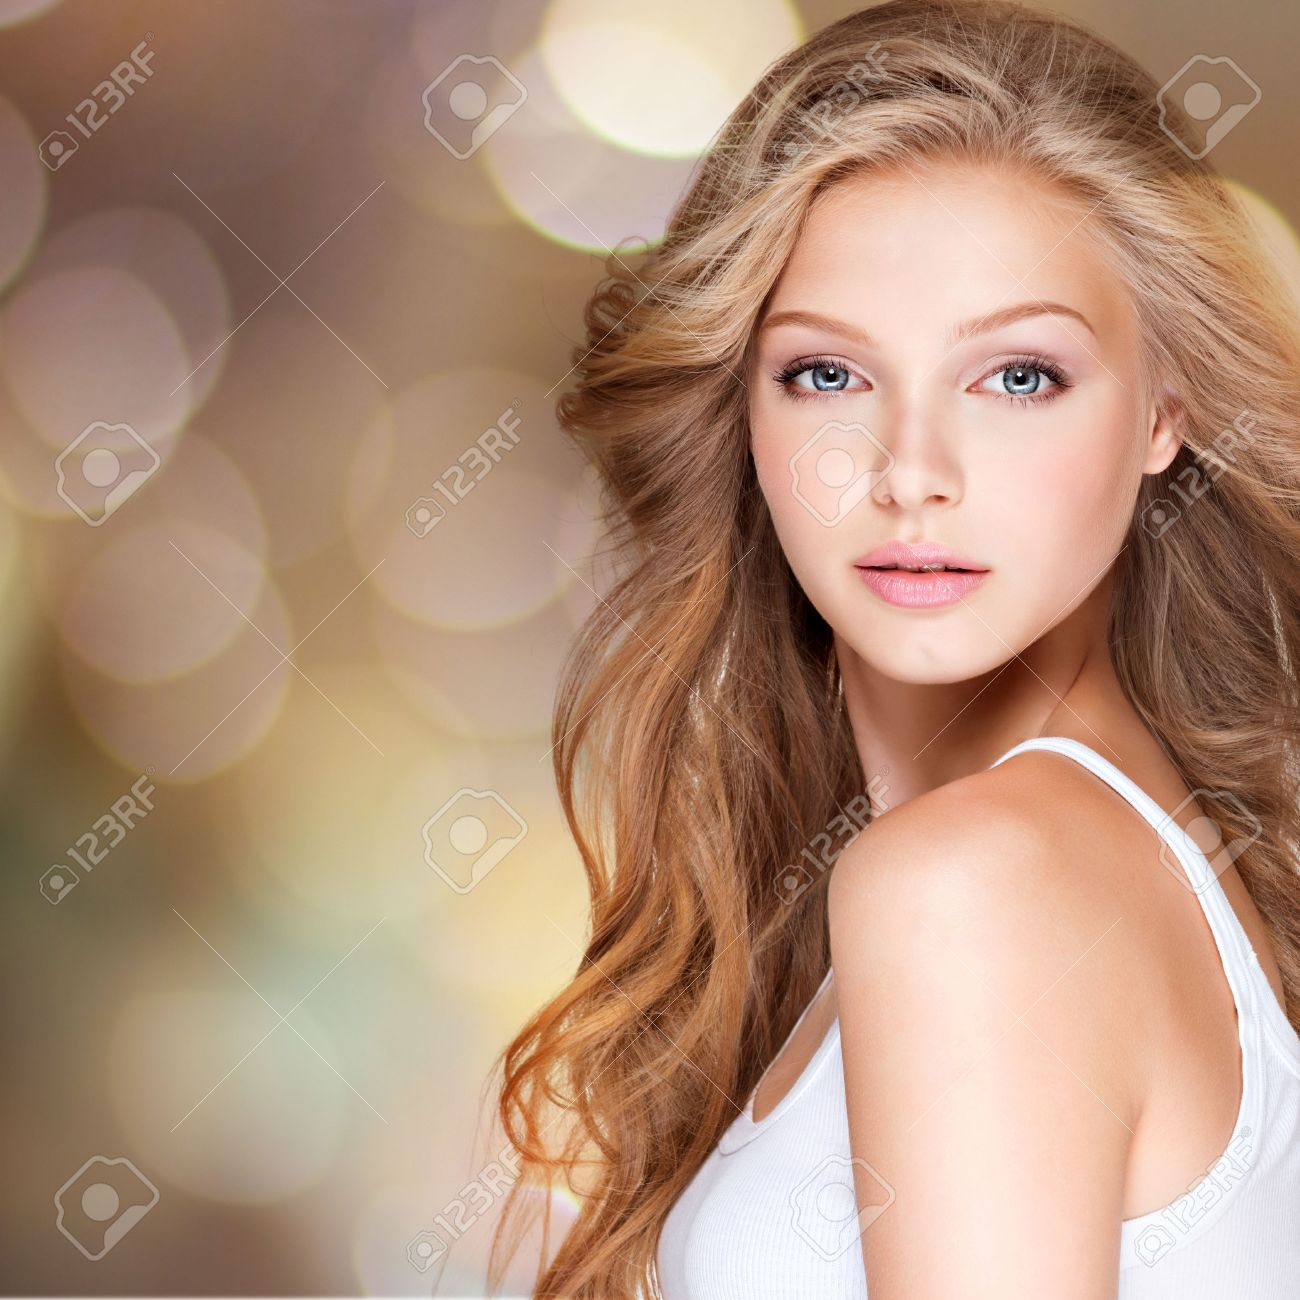 Portrait of beautiful  young woman with long curly hair. Closeup face of a pretty caucasian model looking at camera Stock Photo - 33624703